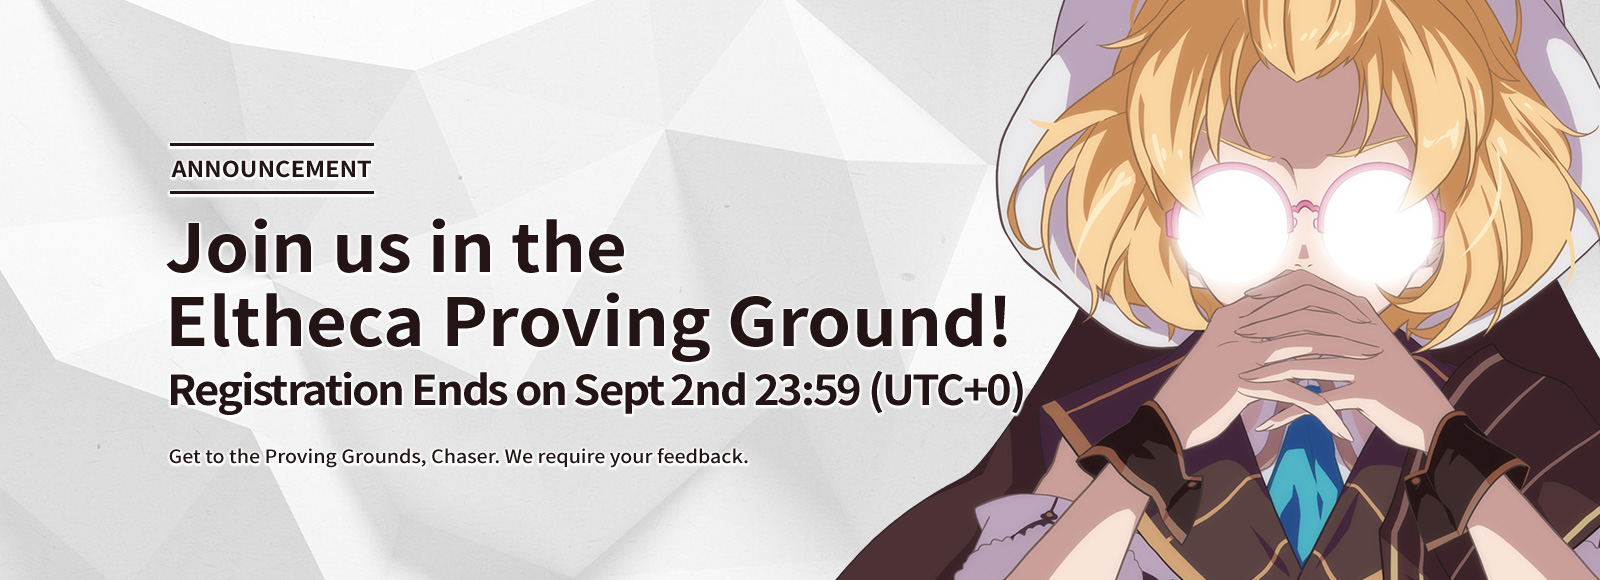 Join us in the Eltheca Proving Ground!